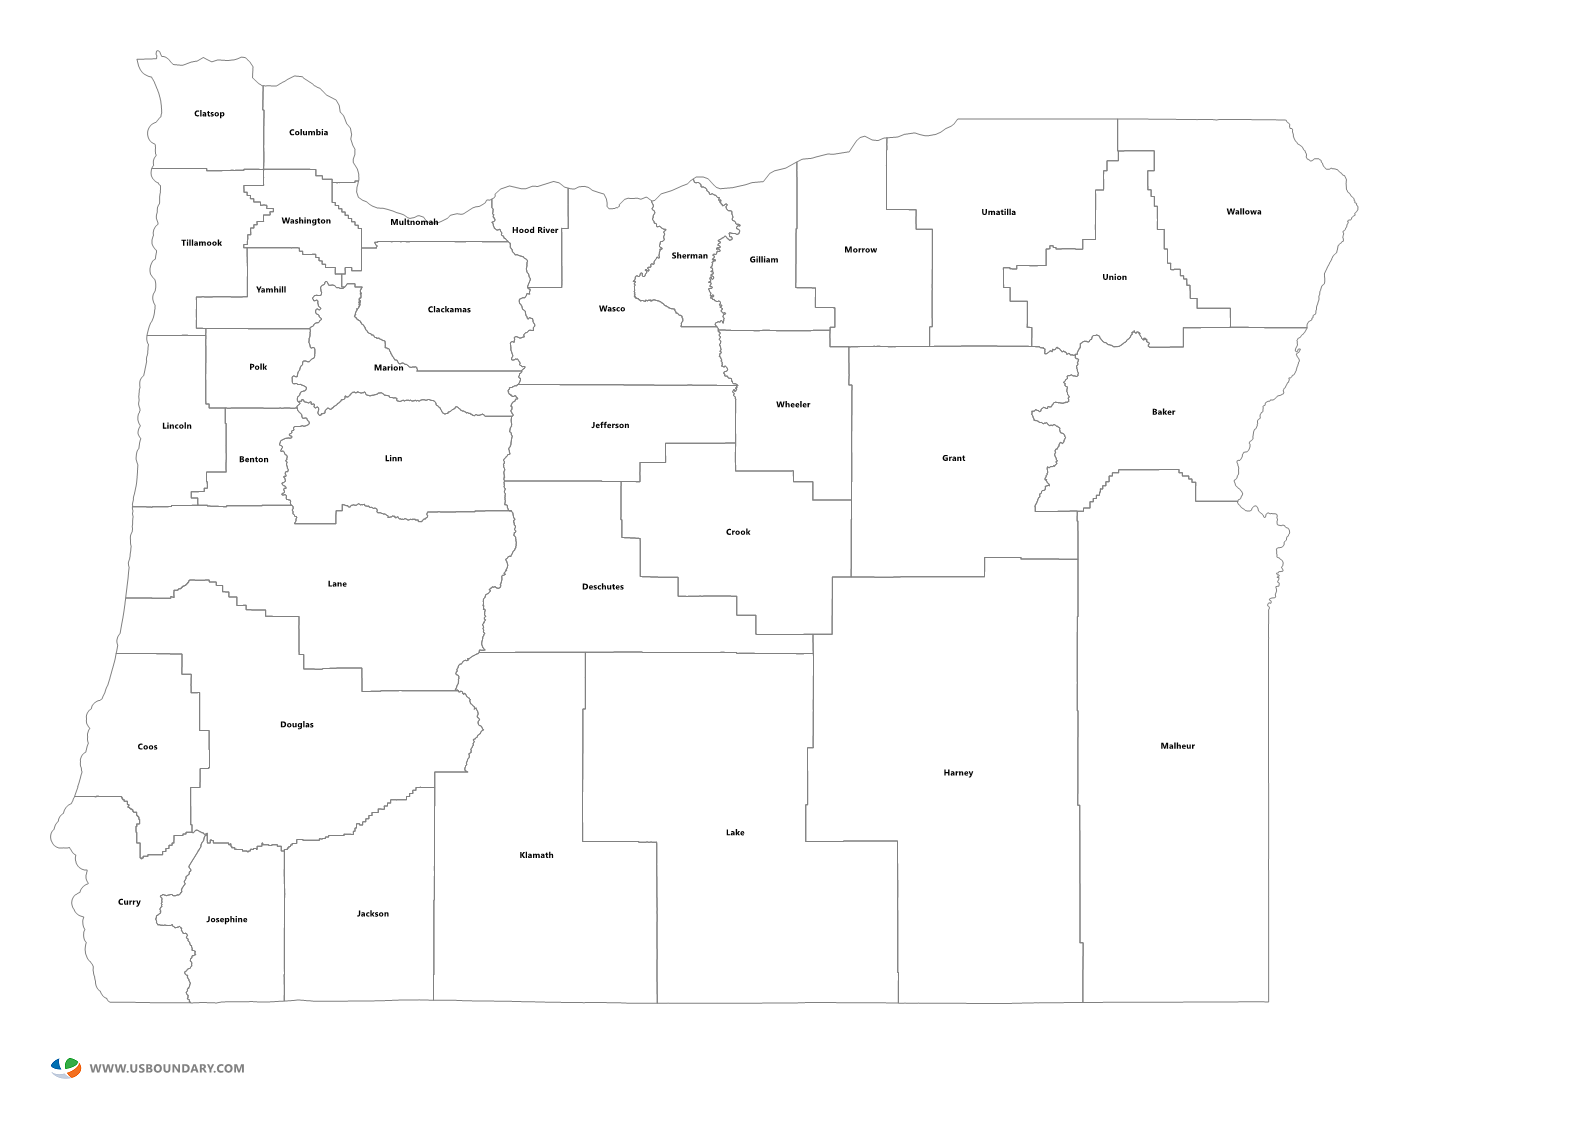 State Counties Maps Download - Oregon county maps